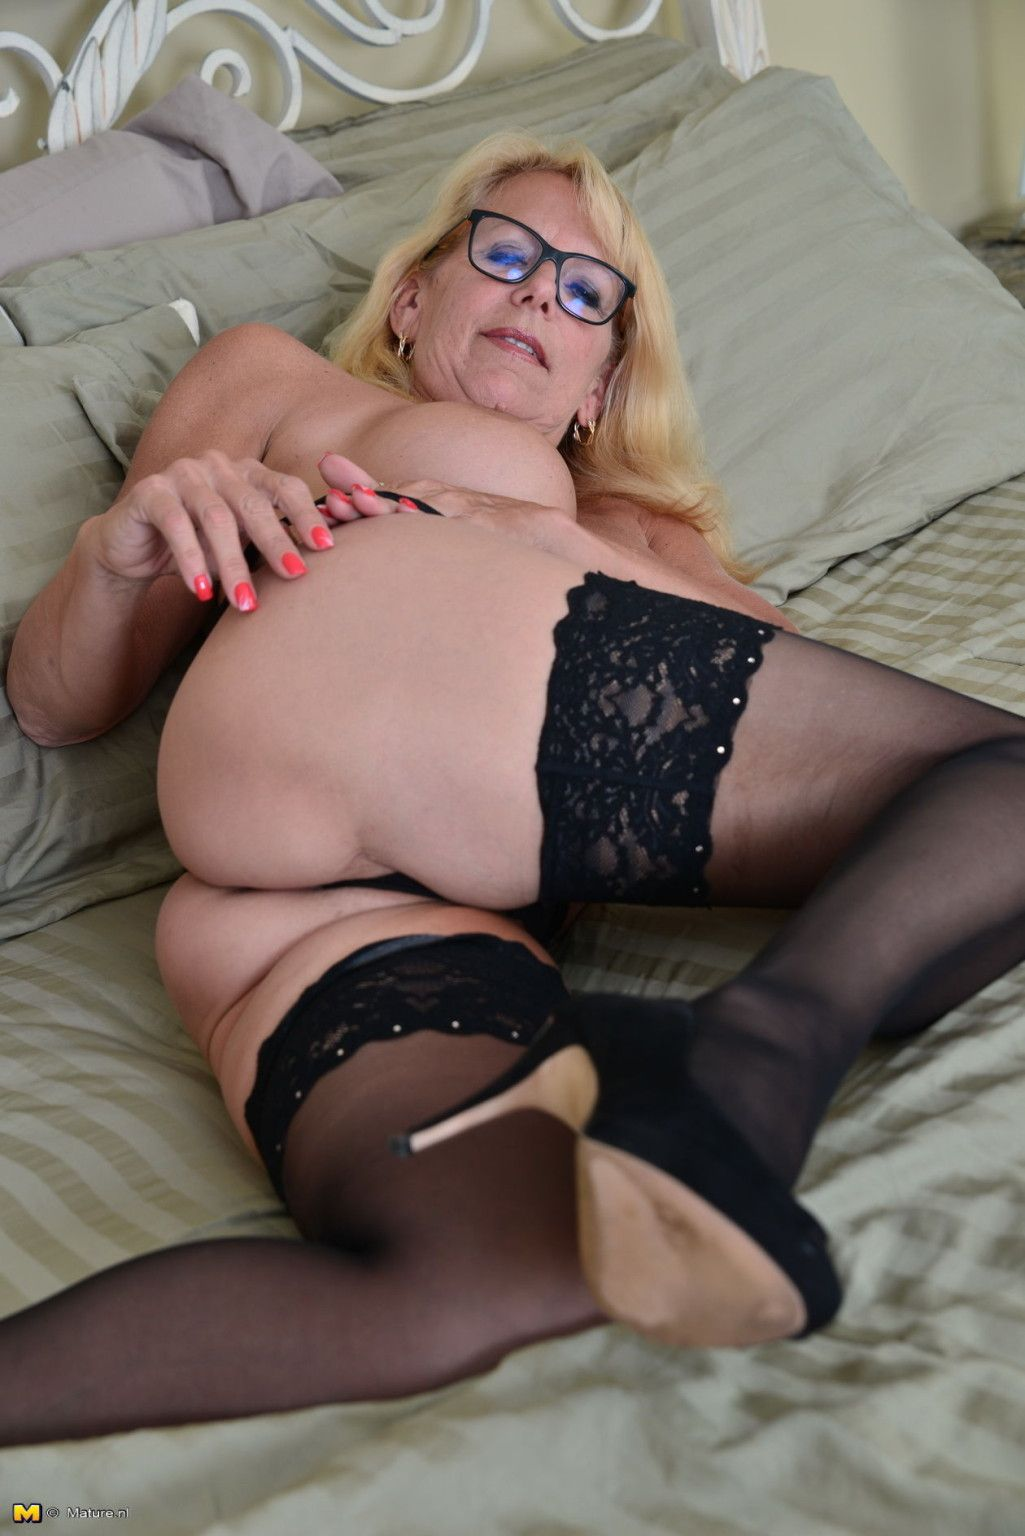 Blonde canadian housewife grinding on her couch at Mature ...